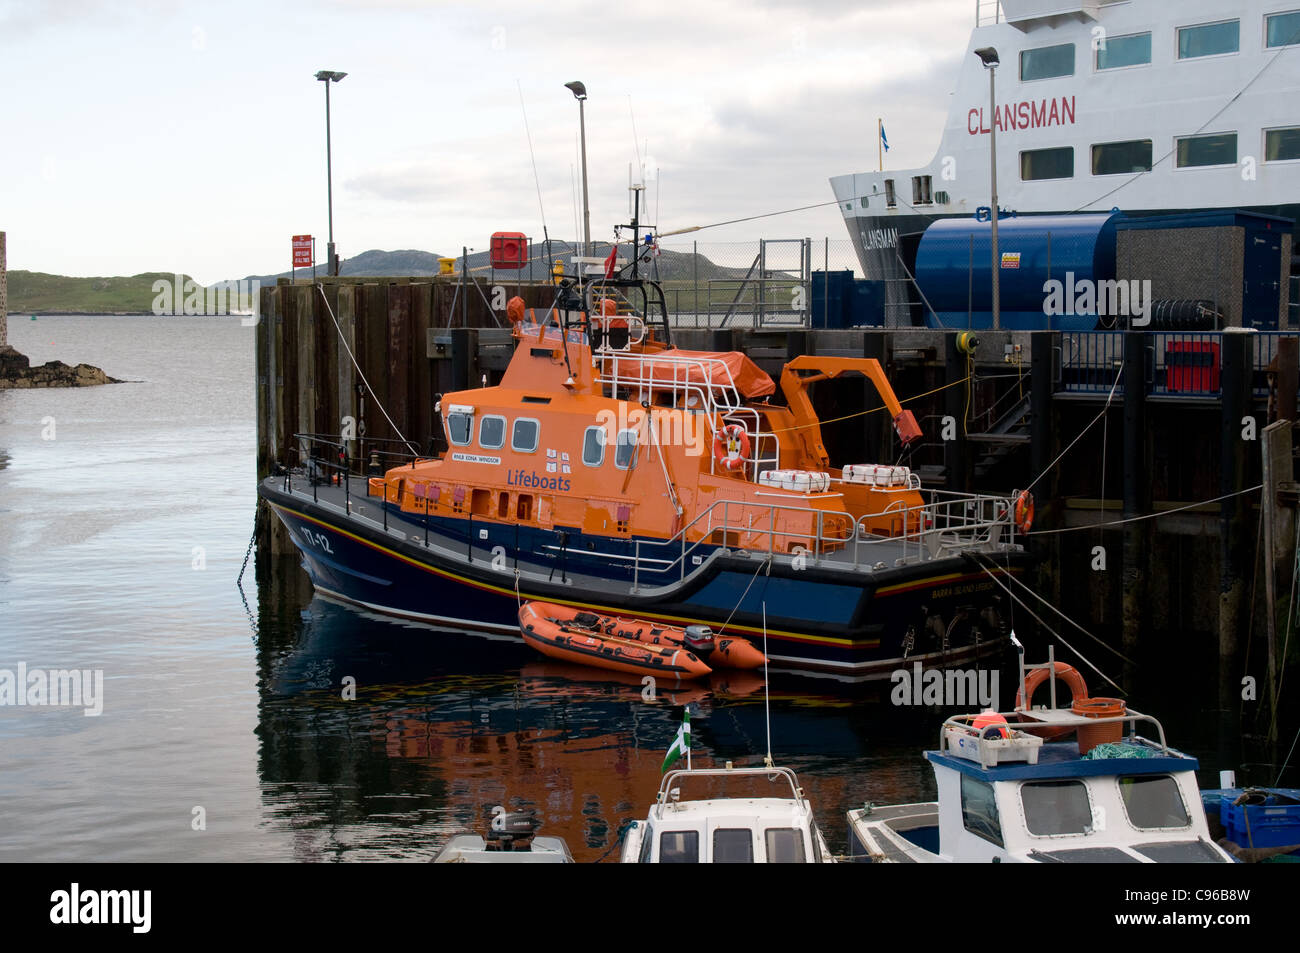 The RNLB lifeboat Edna Windsor is moored in Castlebay on the island of Barra, Scotland ready for duty. - Stock Image